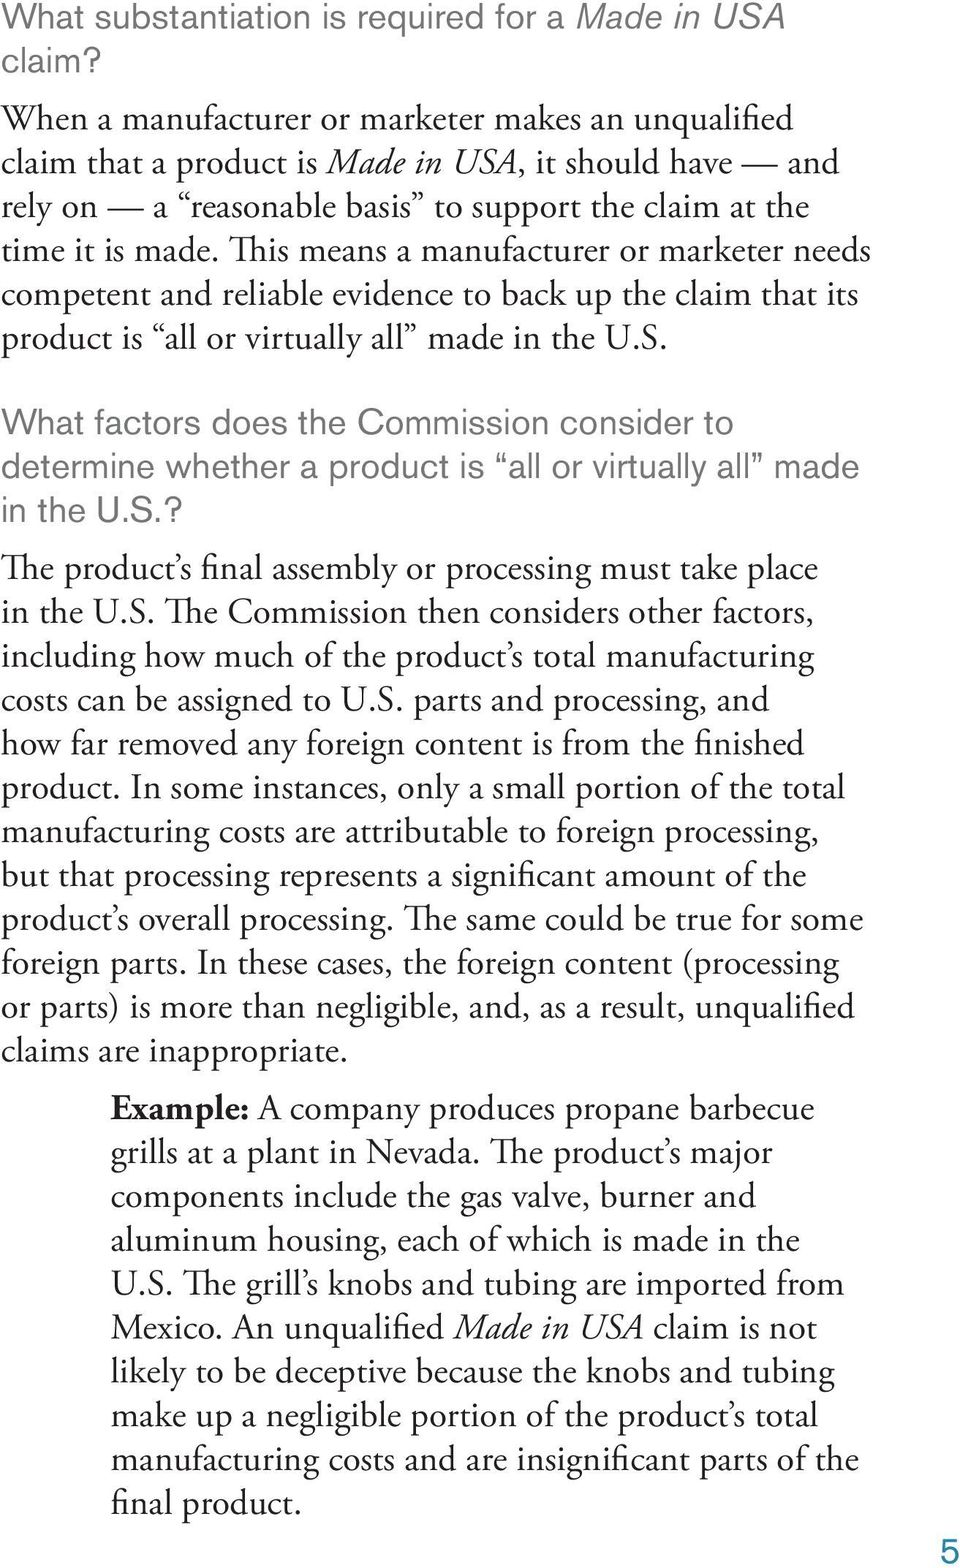 This means a manufacturer or marketer needs competent and reliable evidence to back up the claim that its product is all or virtually all made in the U.S.